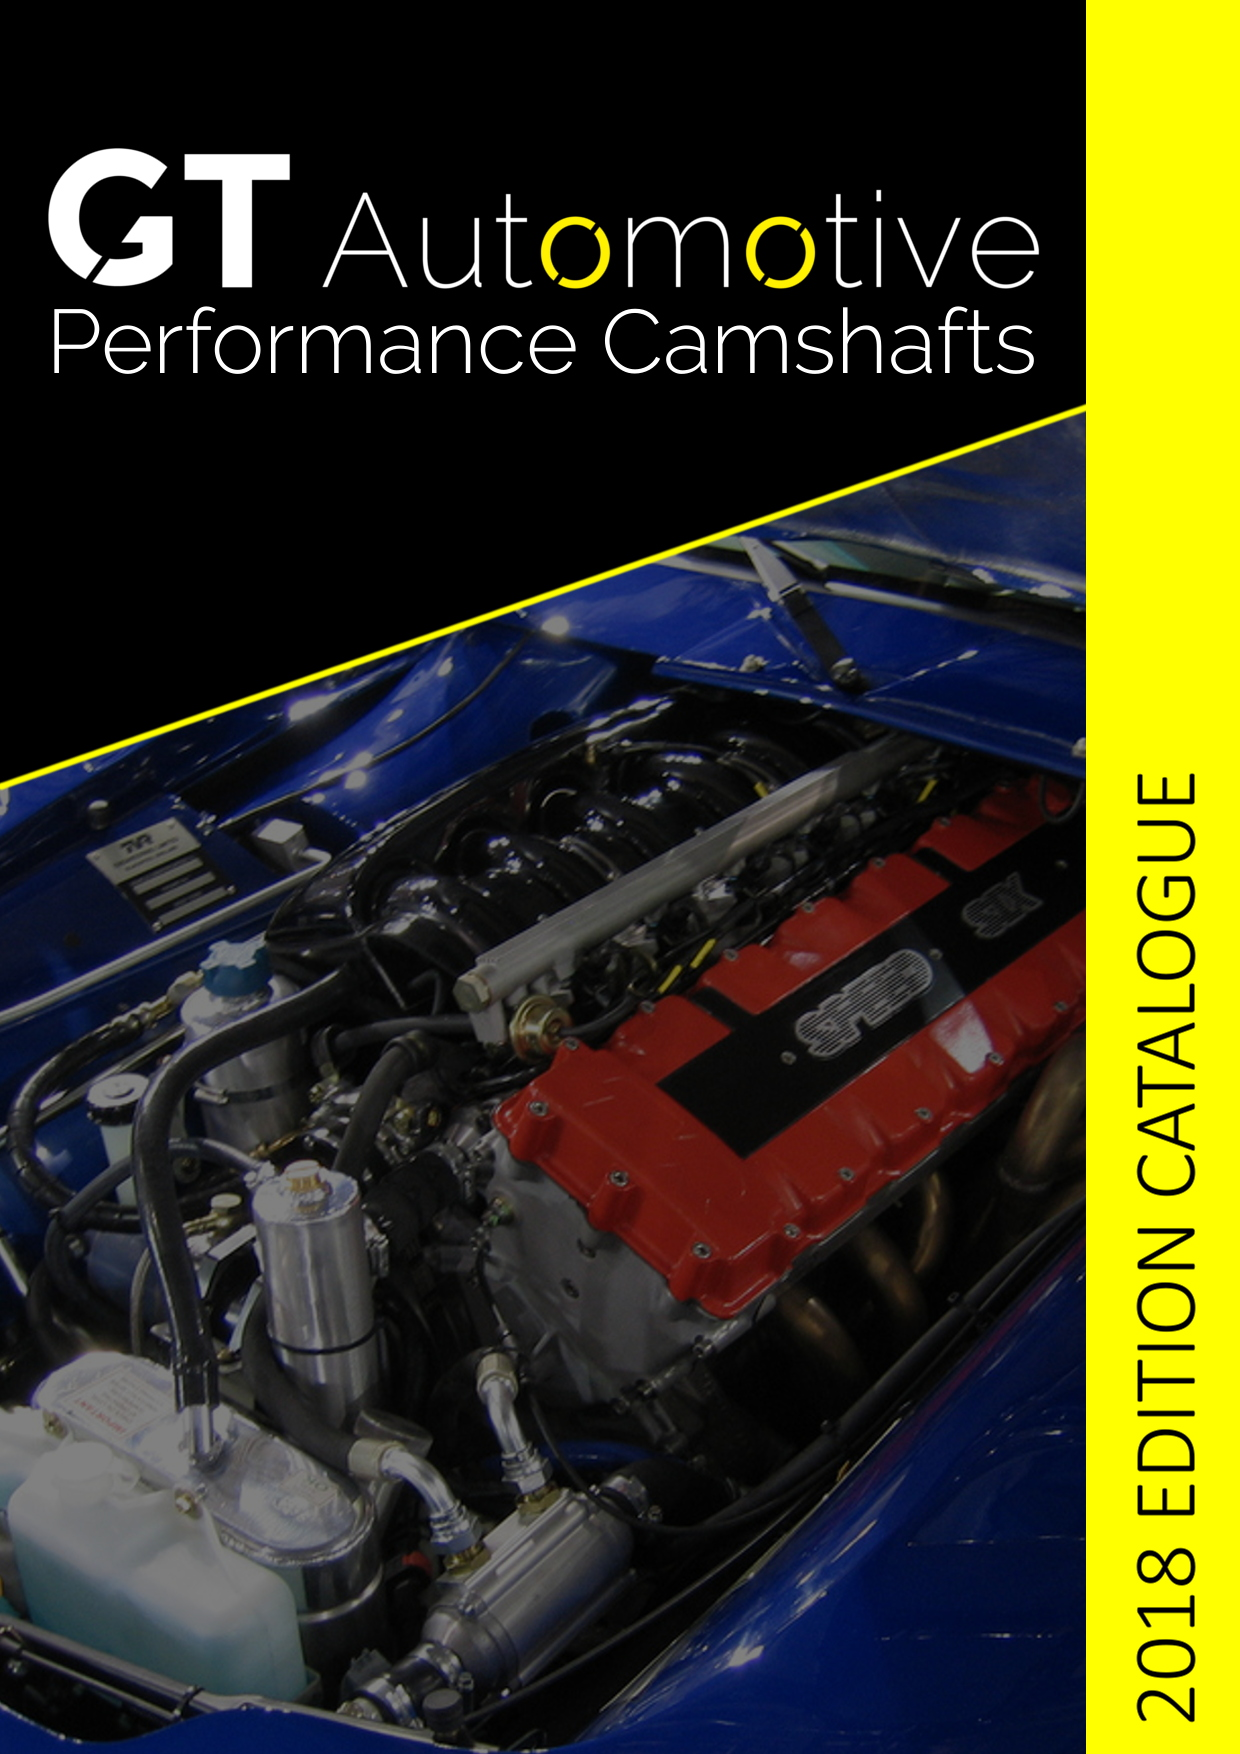 Racing Camshaft Catalogue Cover